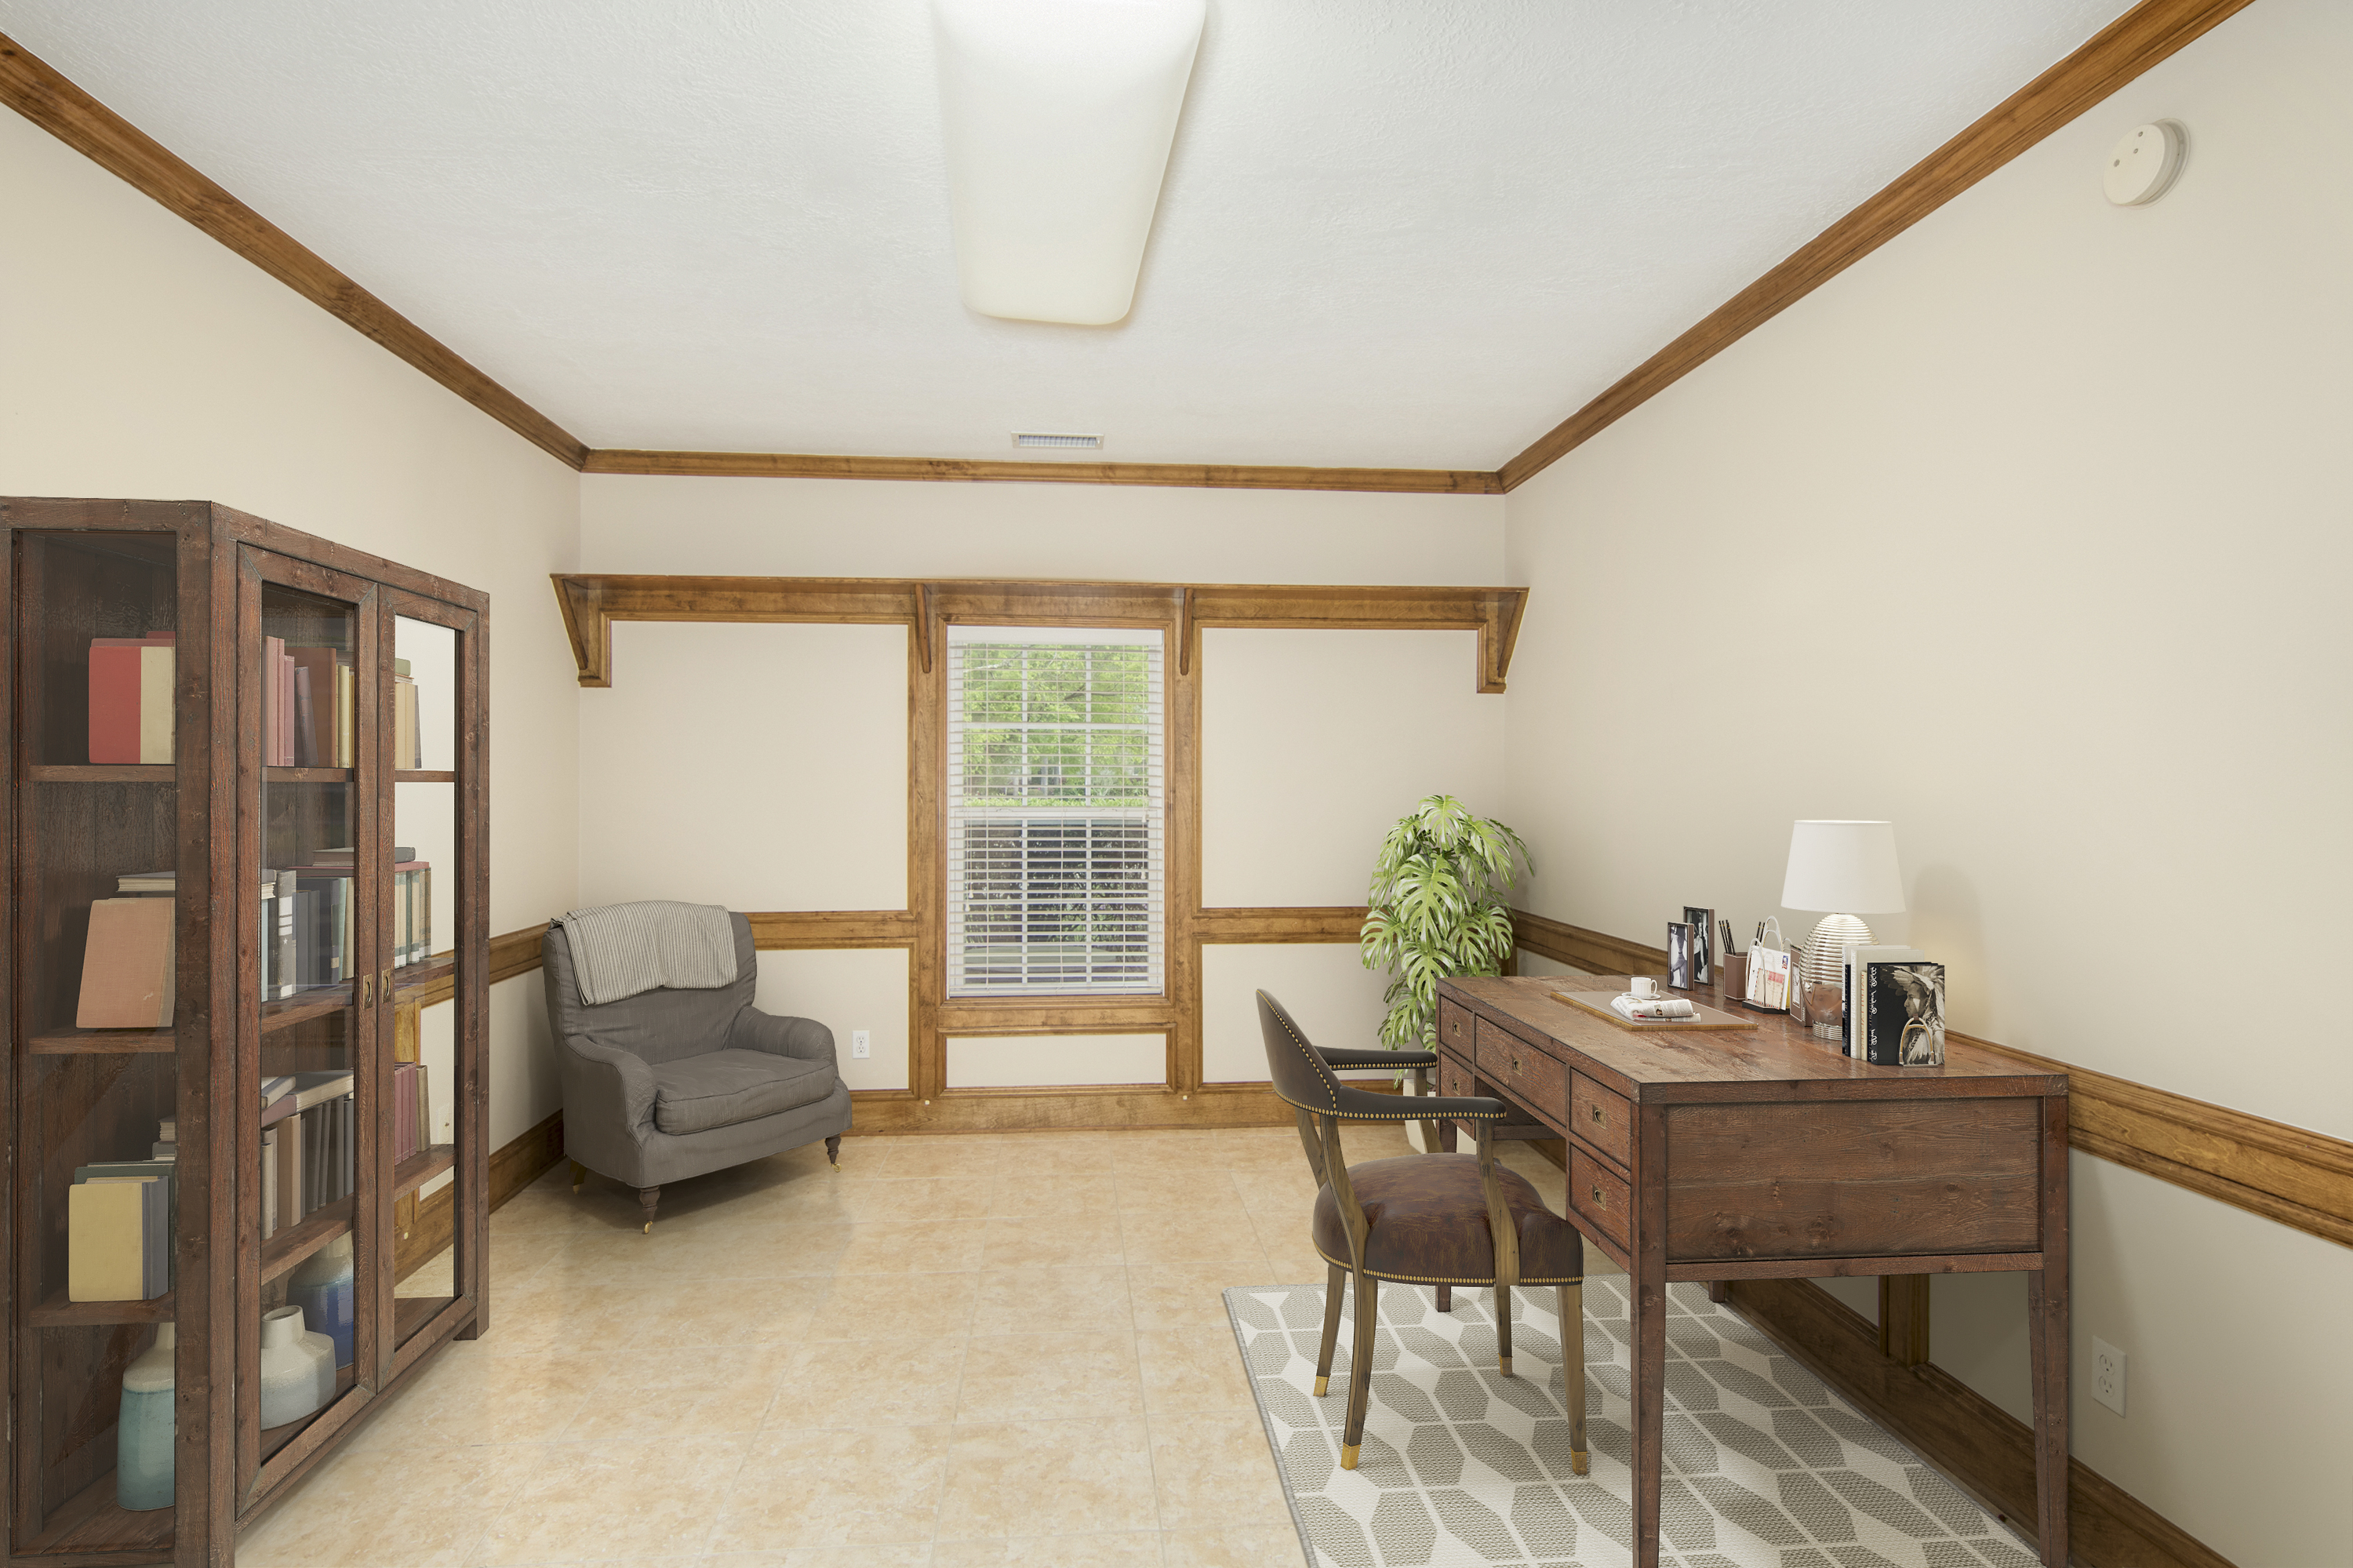 Houston, TX virtual staging photography